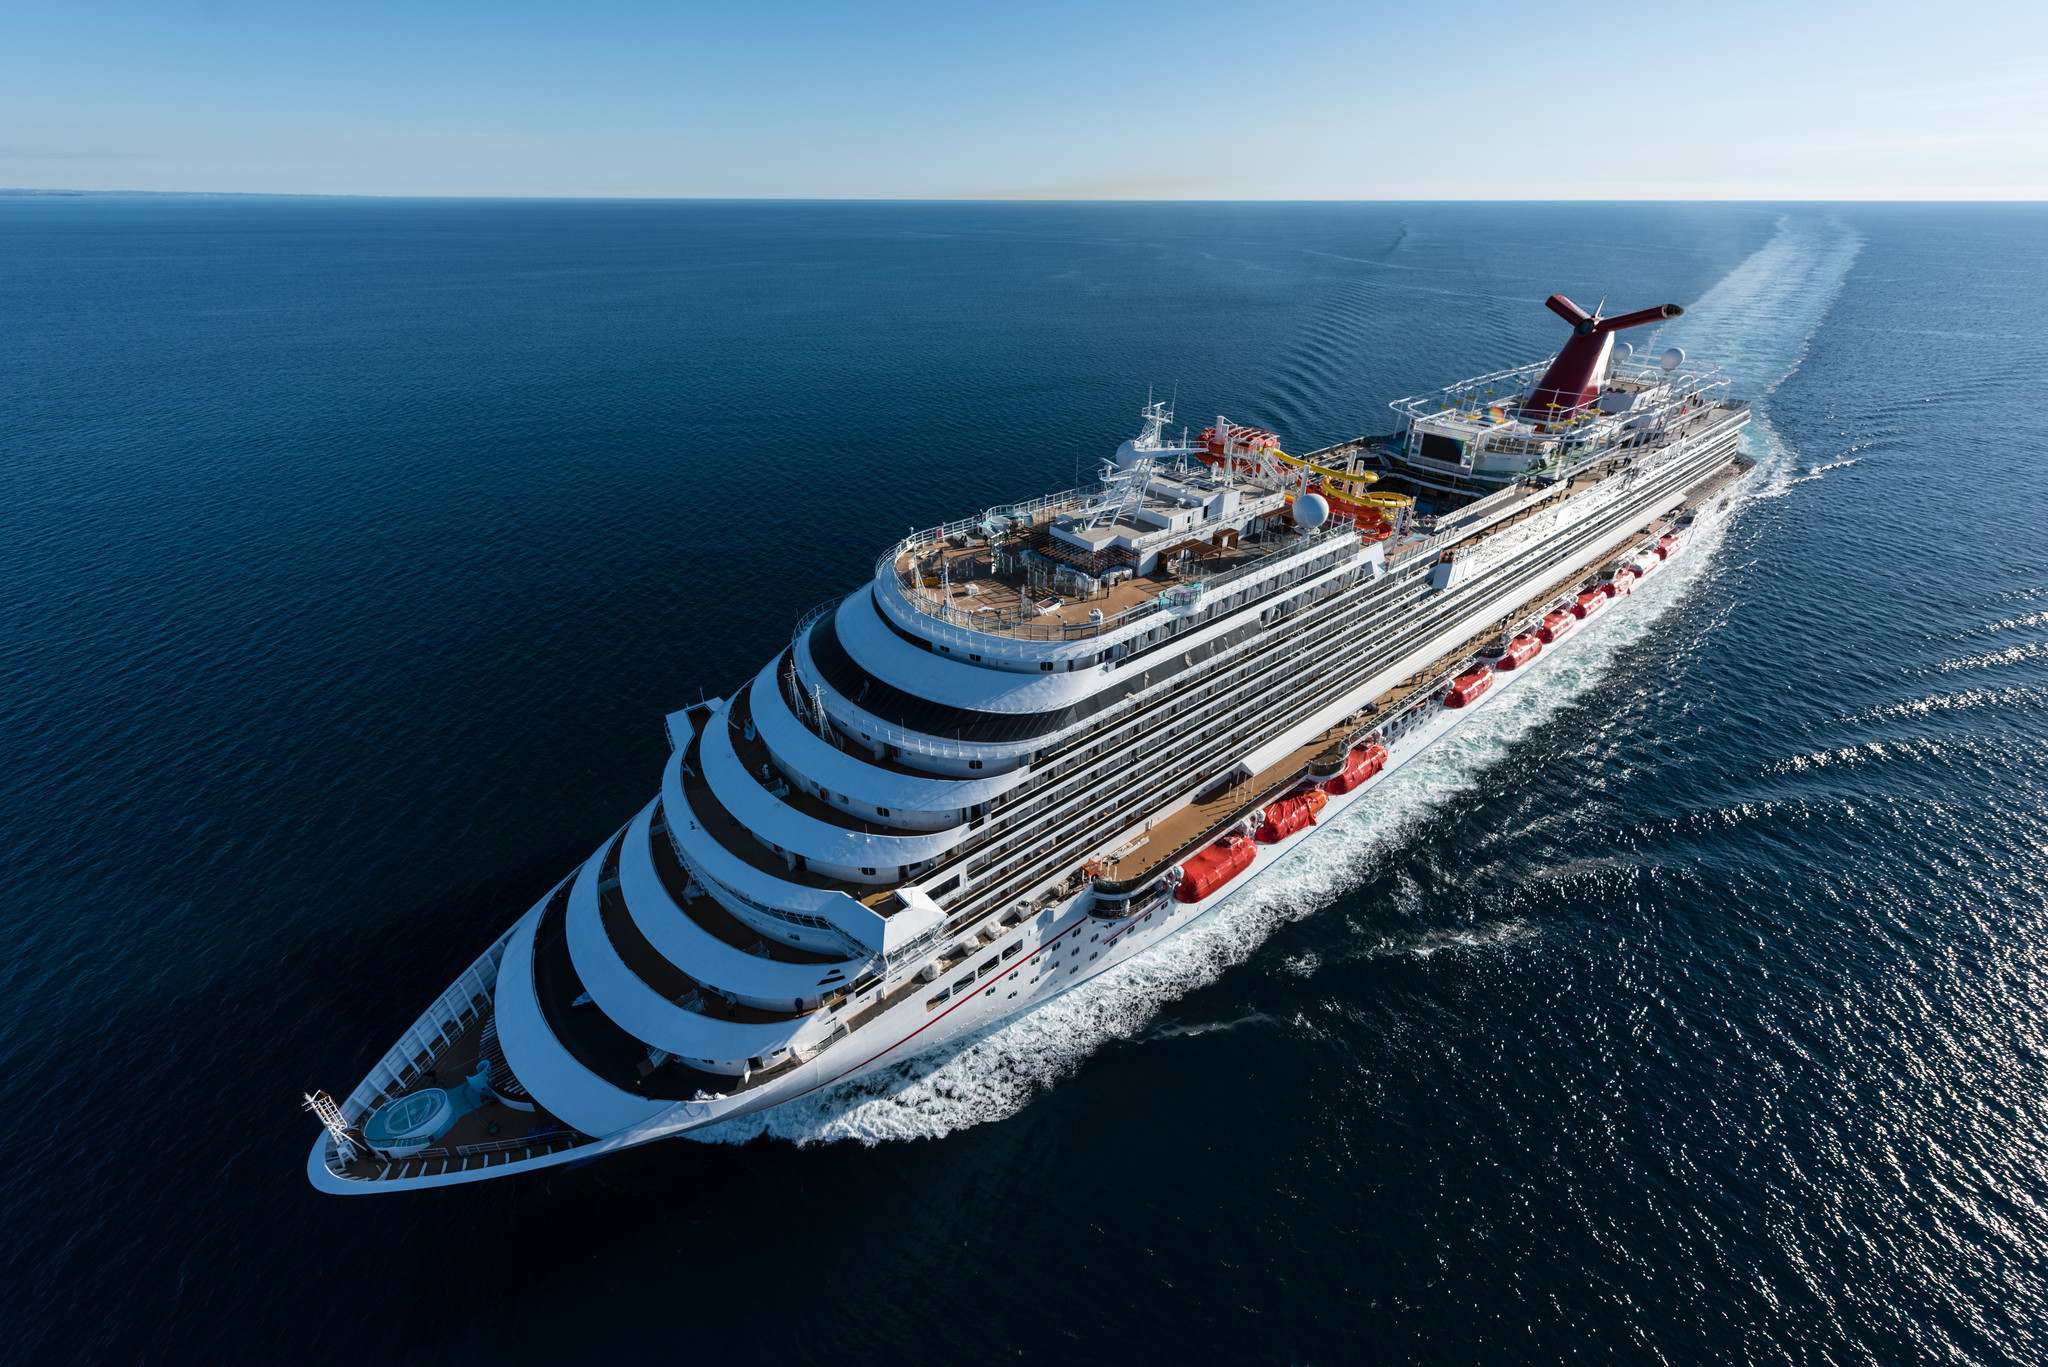 Join us on the Carnival Vista